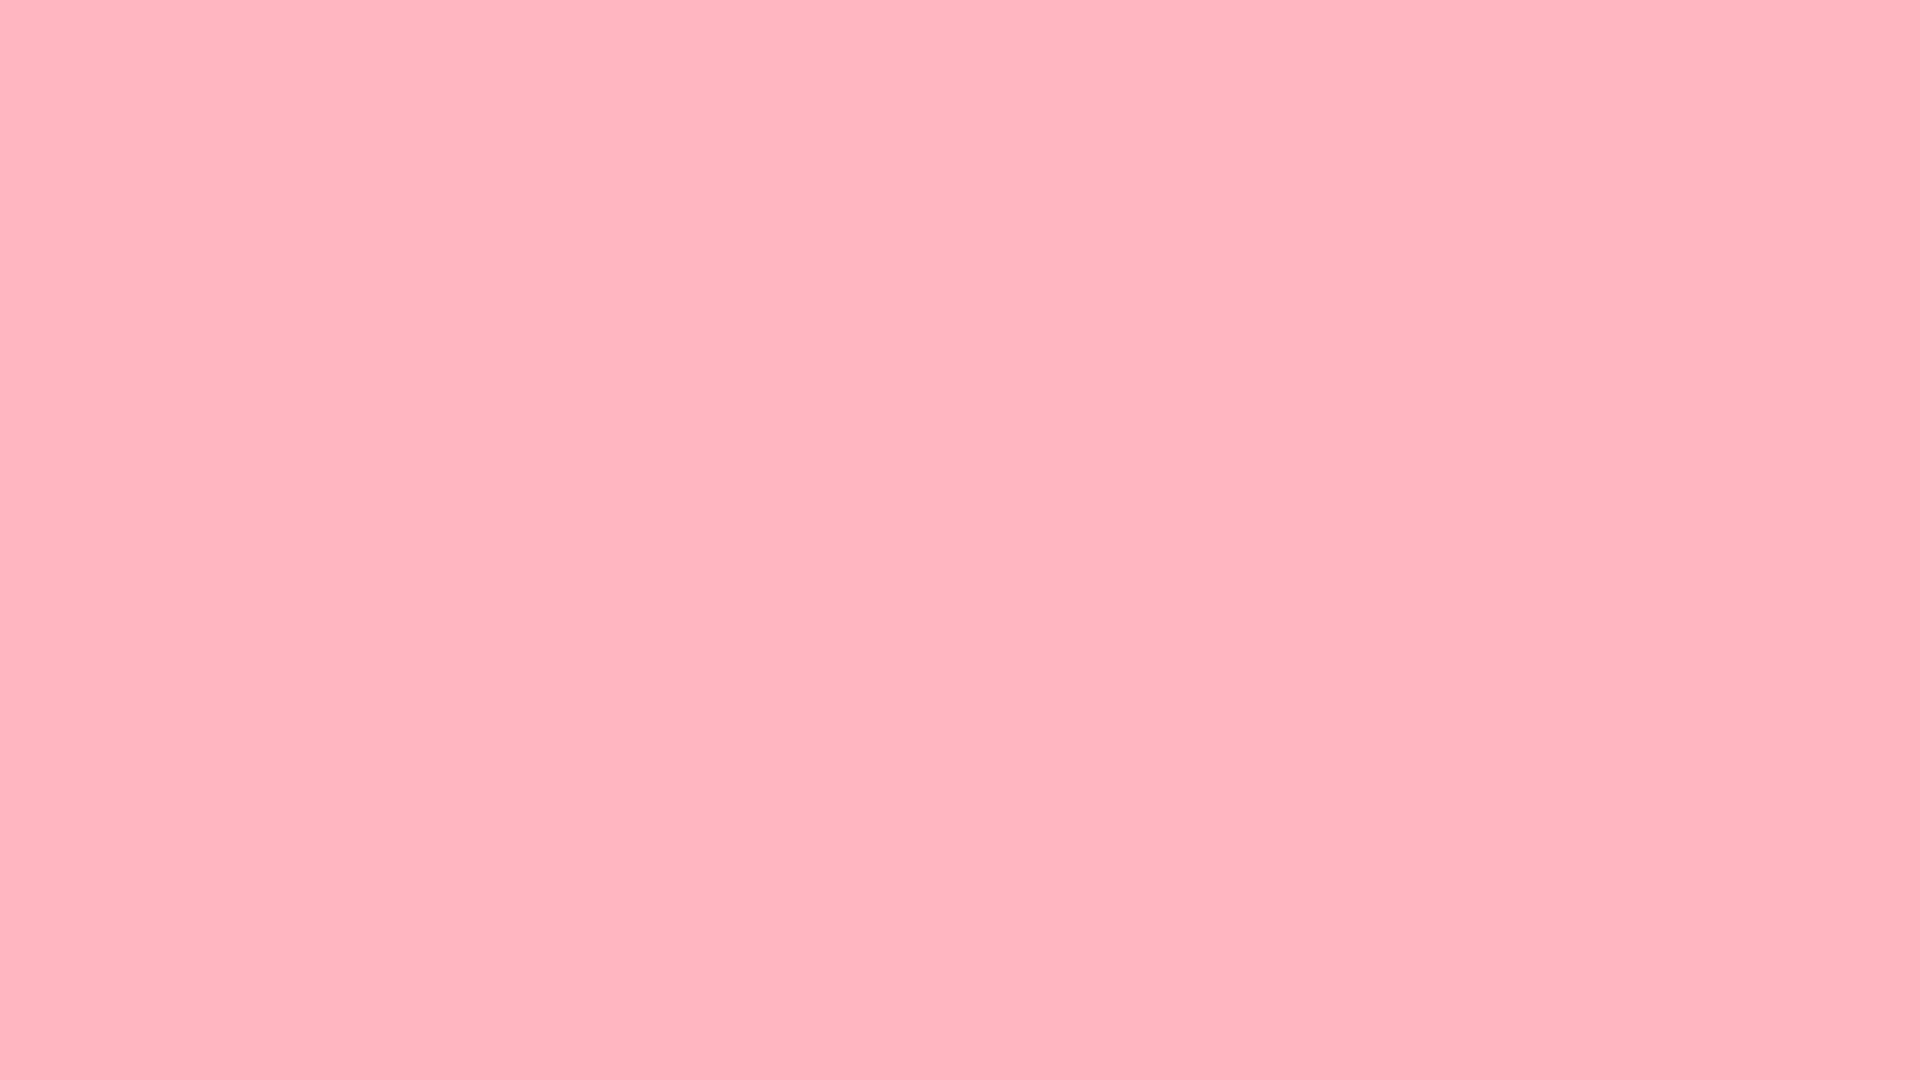 Solid Light Pink Backgrounds 1920x1080 light pink solid 1920x1080